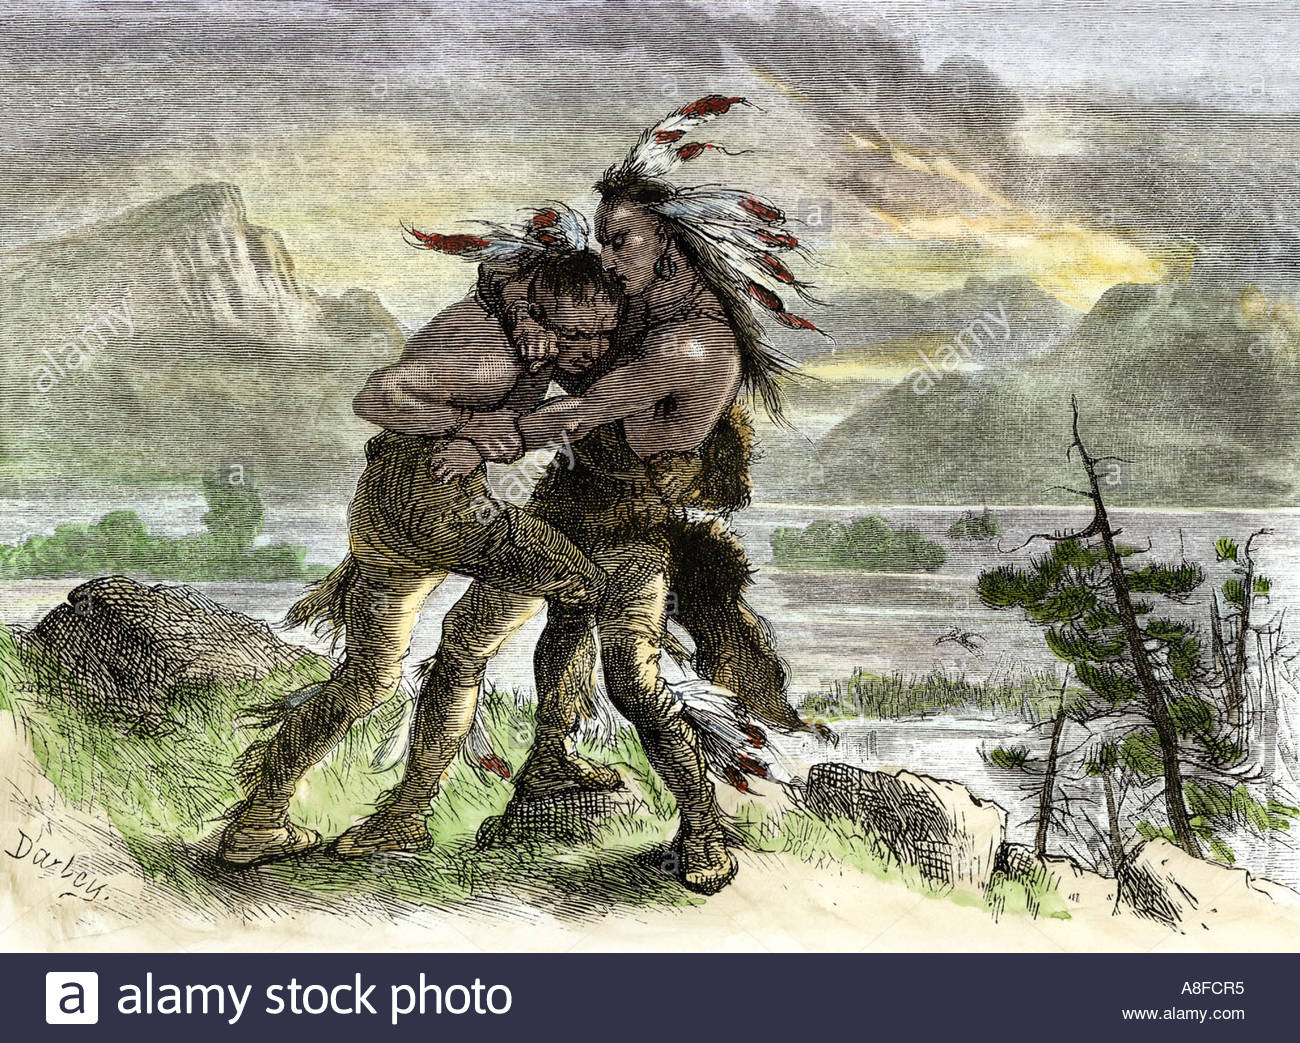 1300x1043 Hiawatha Locked In Combat With Another Native American Warrior